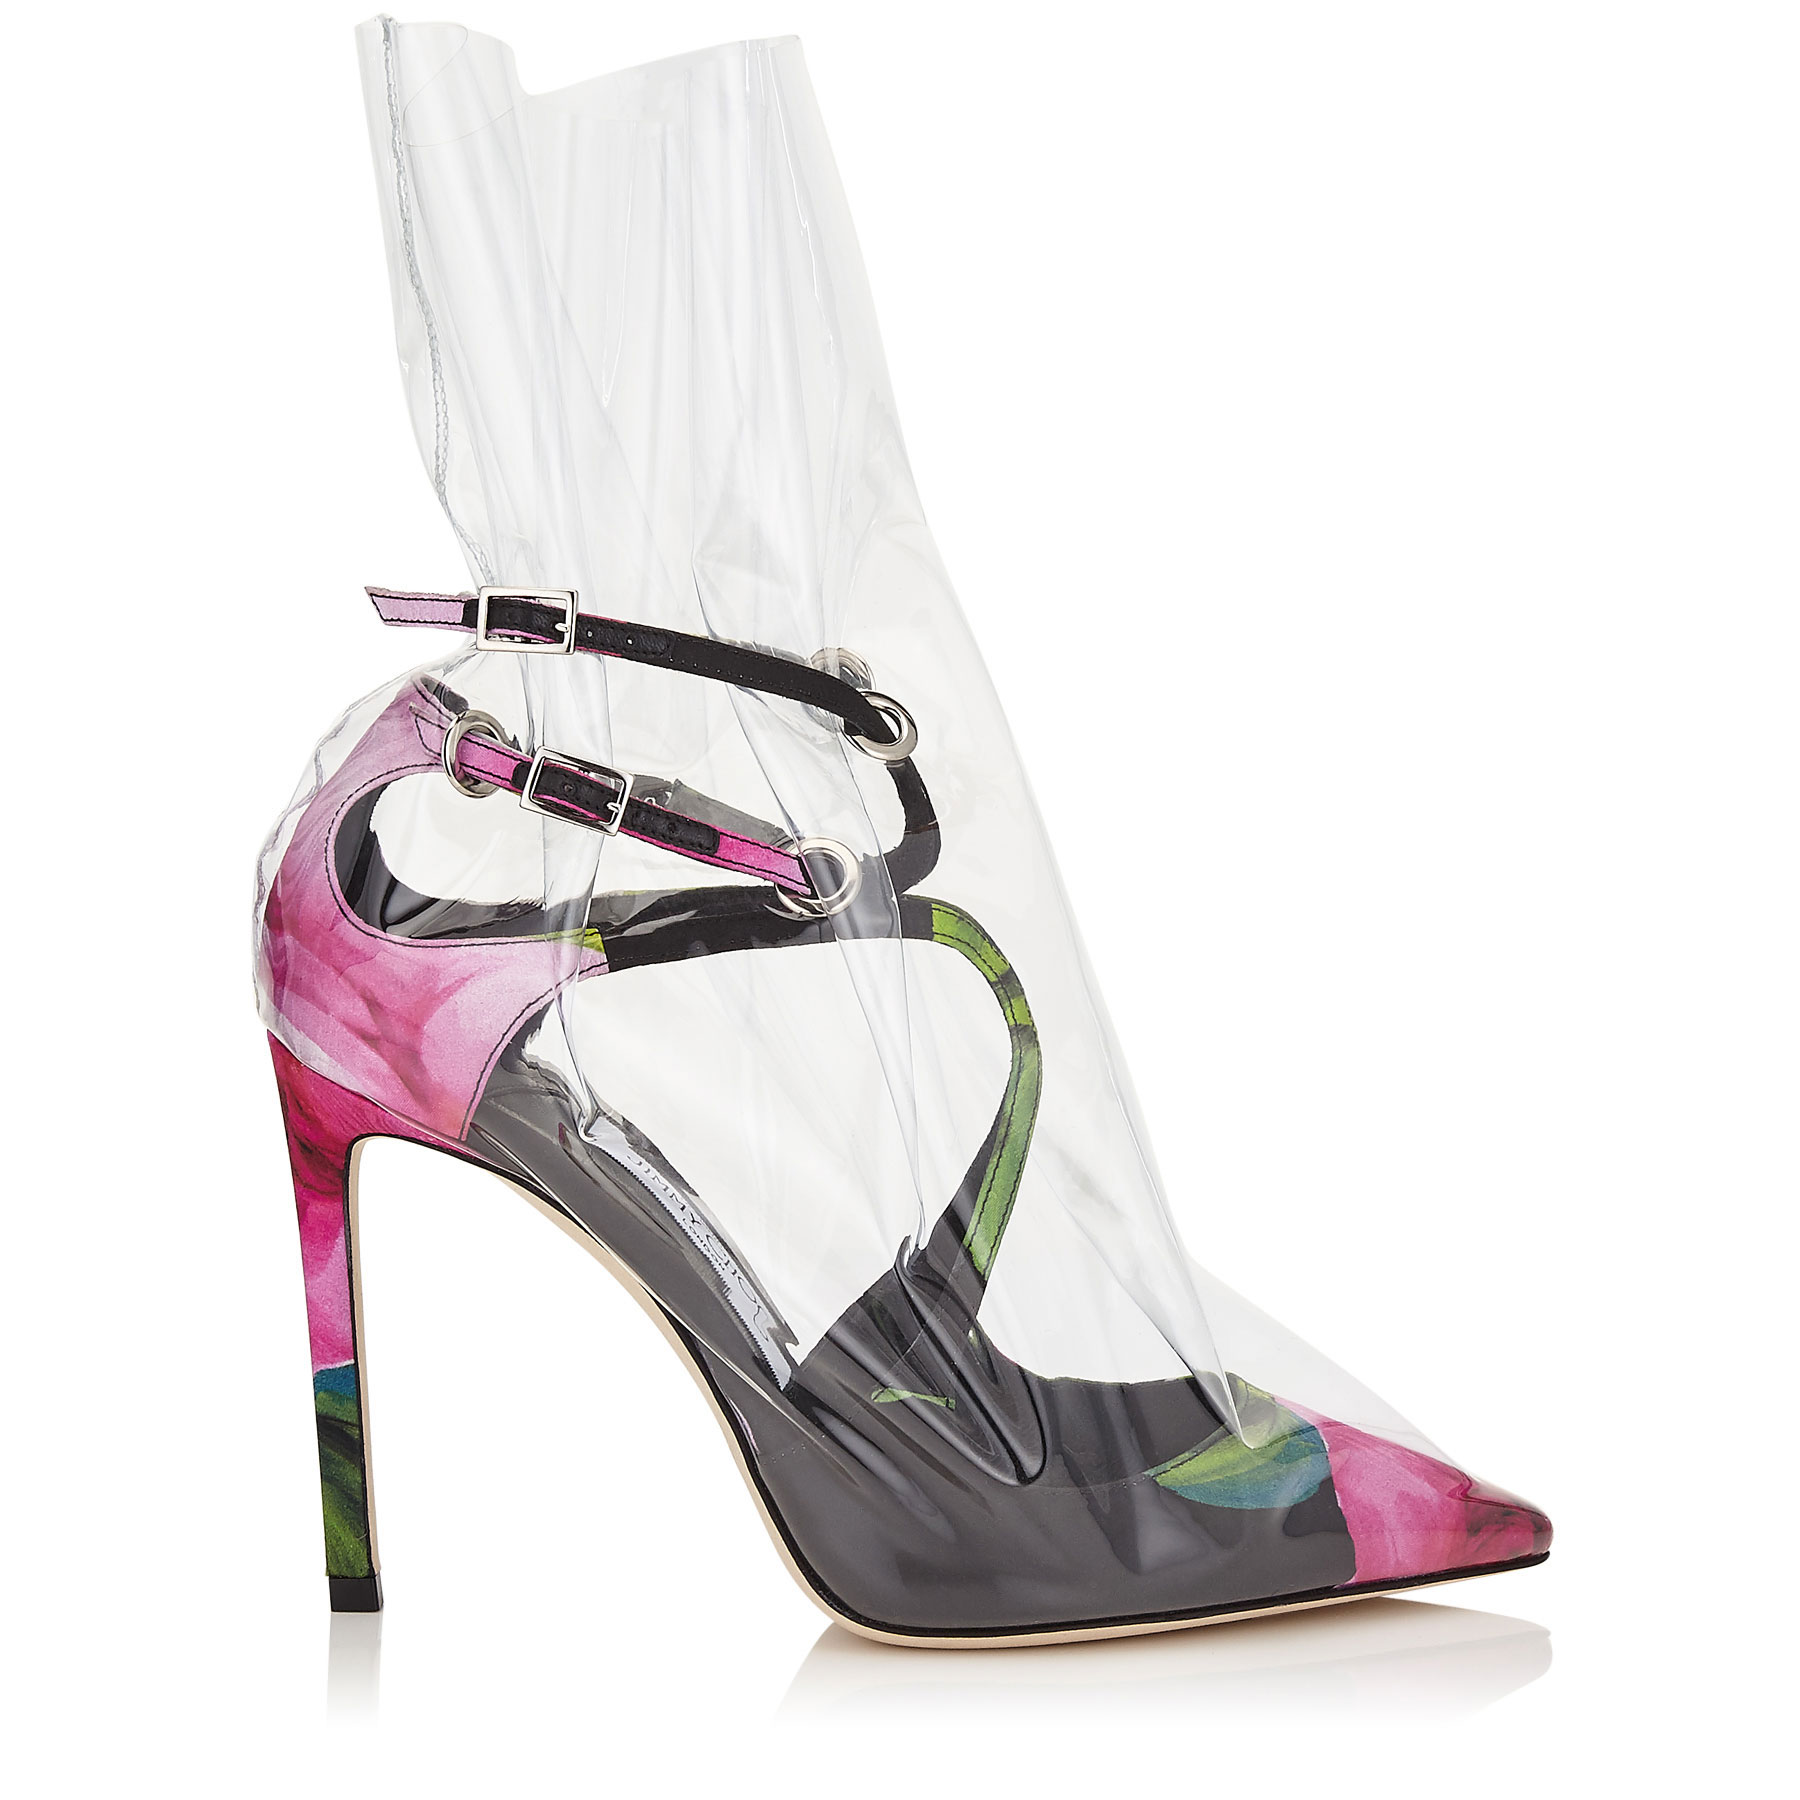 CLAIRE 100 Floral Printed Pointy Toe Pumps with Ruched TPU by Jimmy Choo